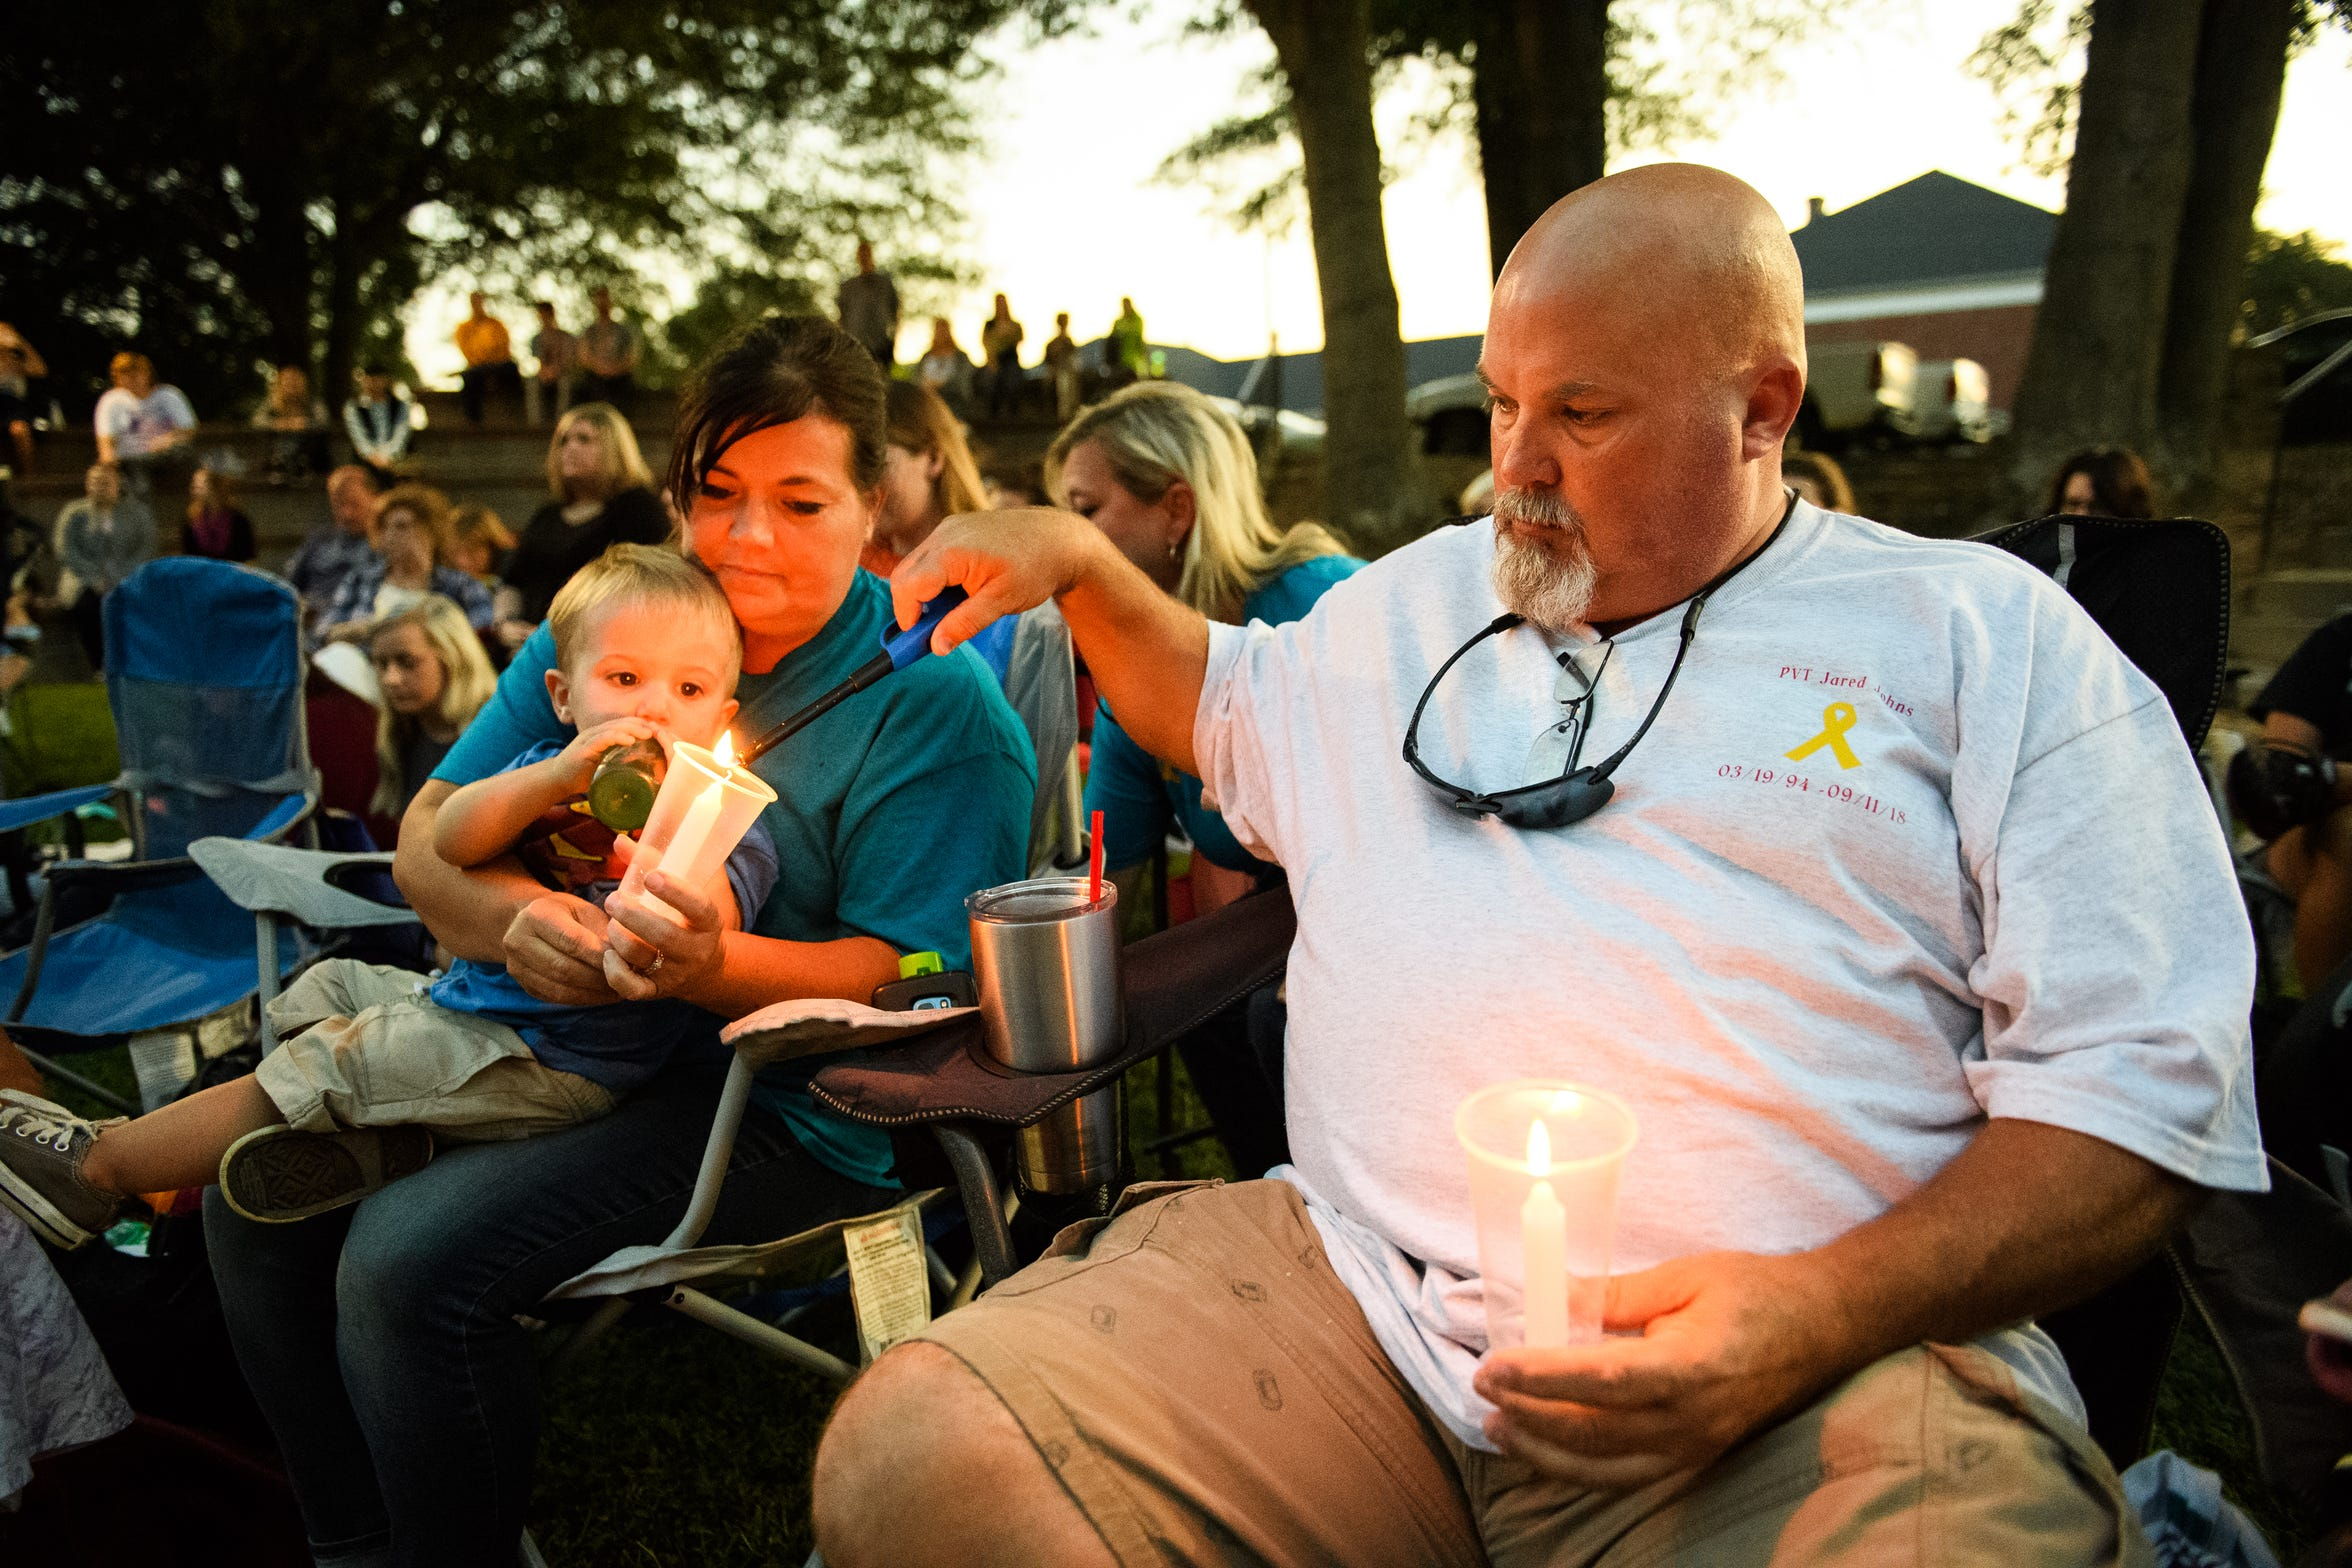 Kevin Johns, lights a candle for Kathy Bowling during a candlelight vigil for their son Jared Johns at Simpsonville City Park on Sunday, Sept. 23, 2018.